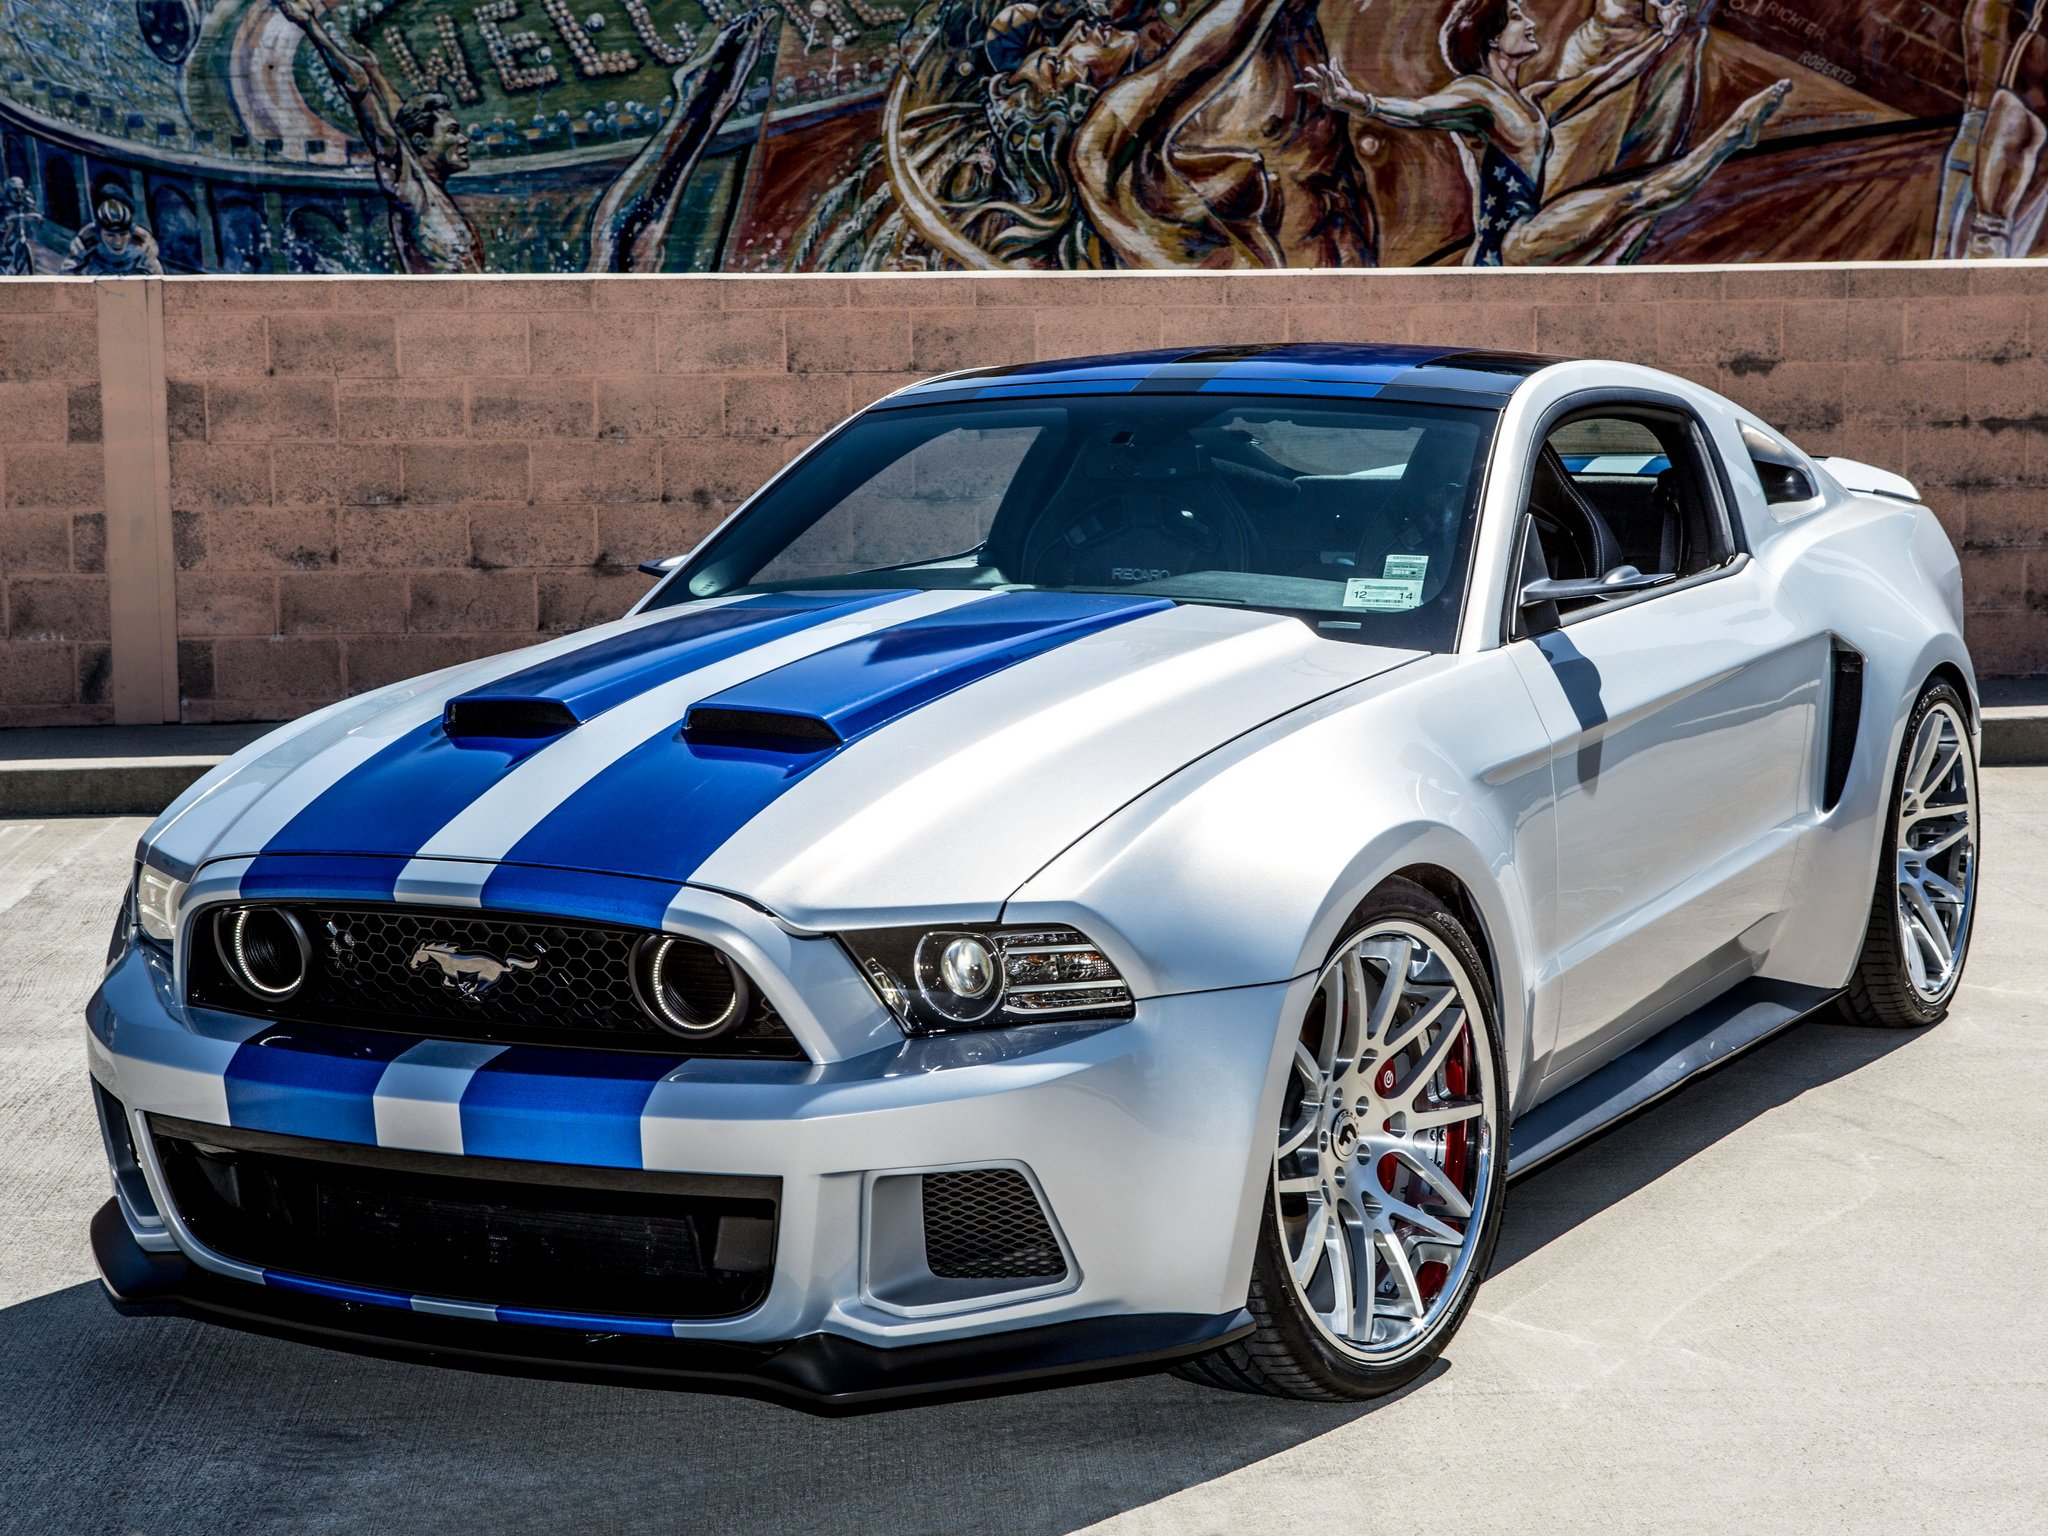 2014 ford mustang g t need for speed movoe film supercar muscle hot rod rods tuning gh wallpaper 2048x1536 298545 wallpaperup